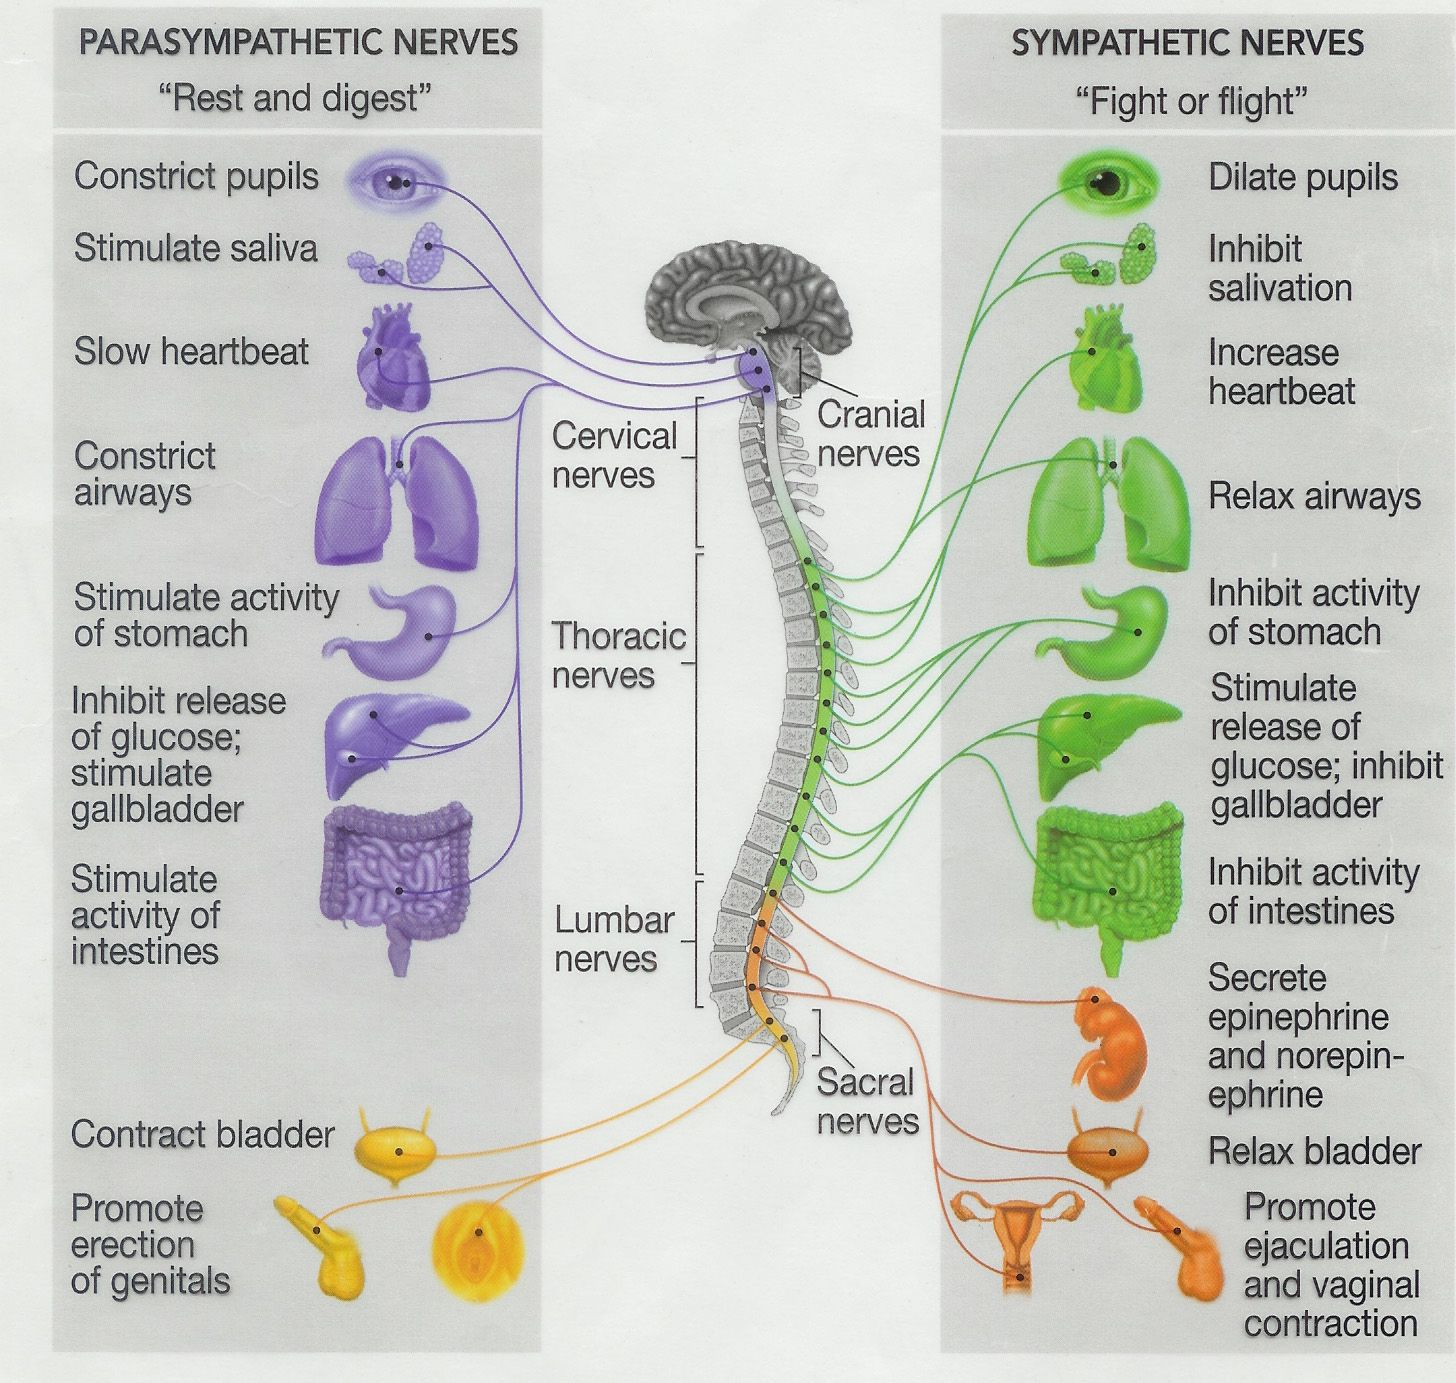 Parasympathetic Nerves Vs Sympathetic Nerves Chart